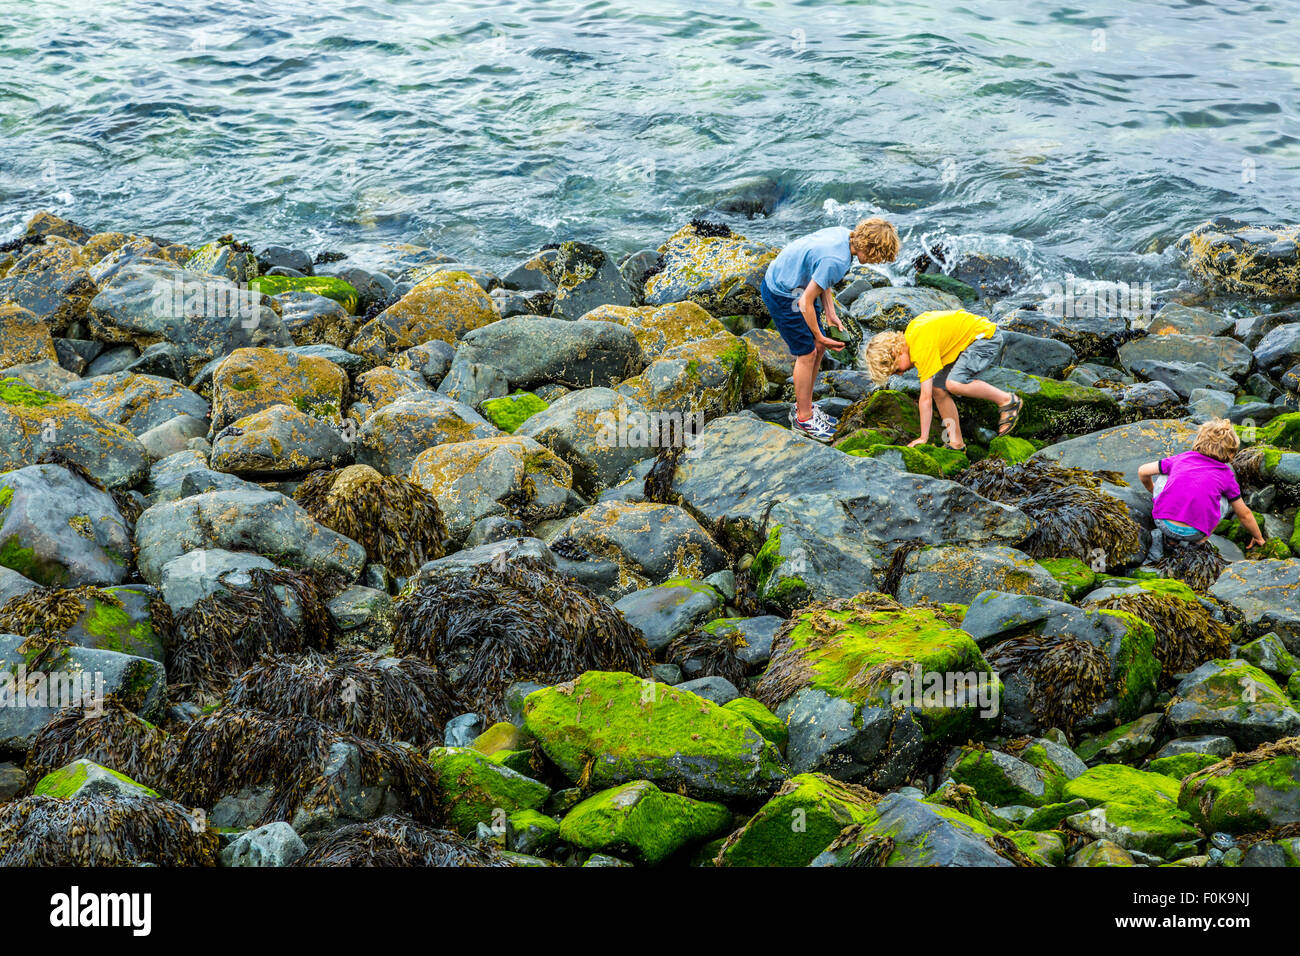 Children plating in rock pools in St. Ives, Cornwall, UK - Stock Image